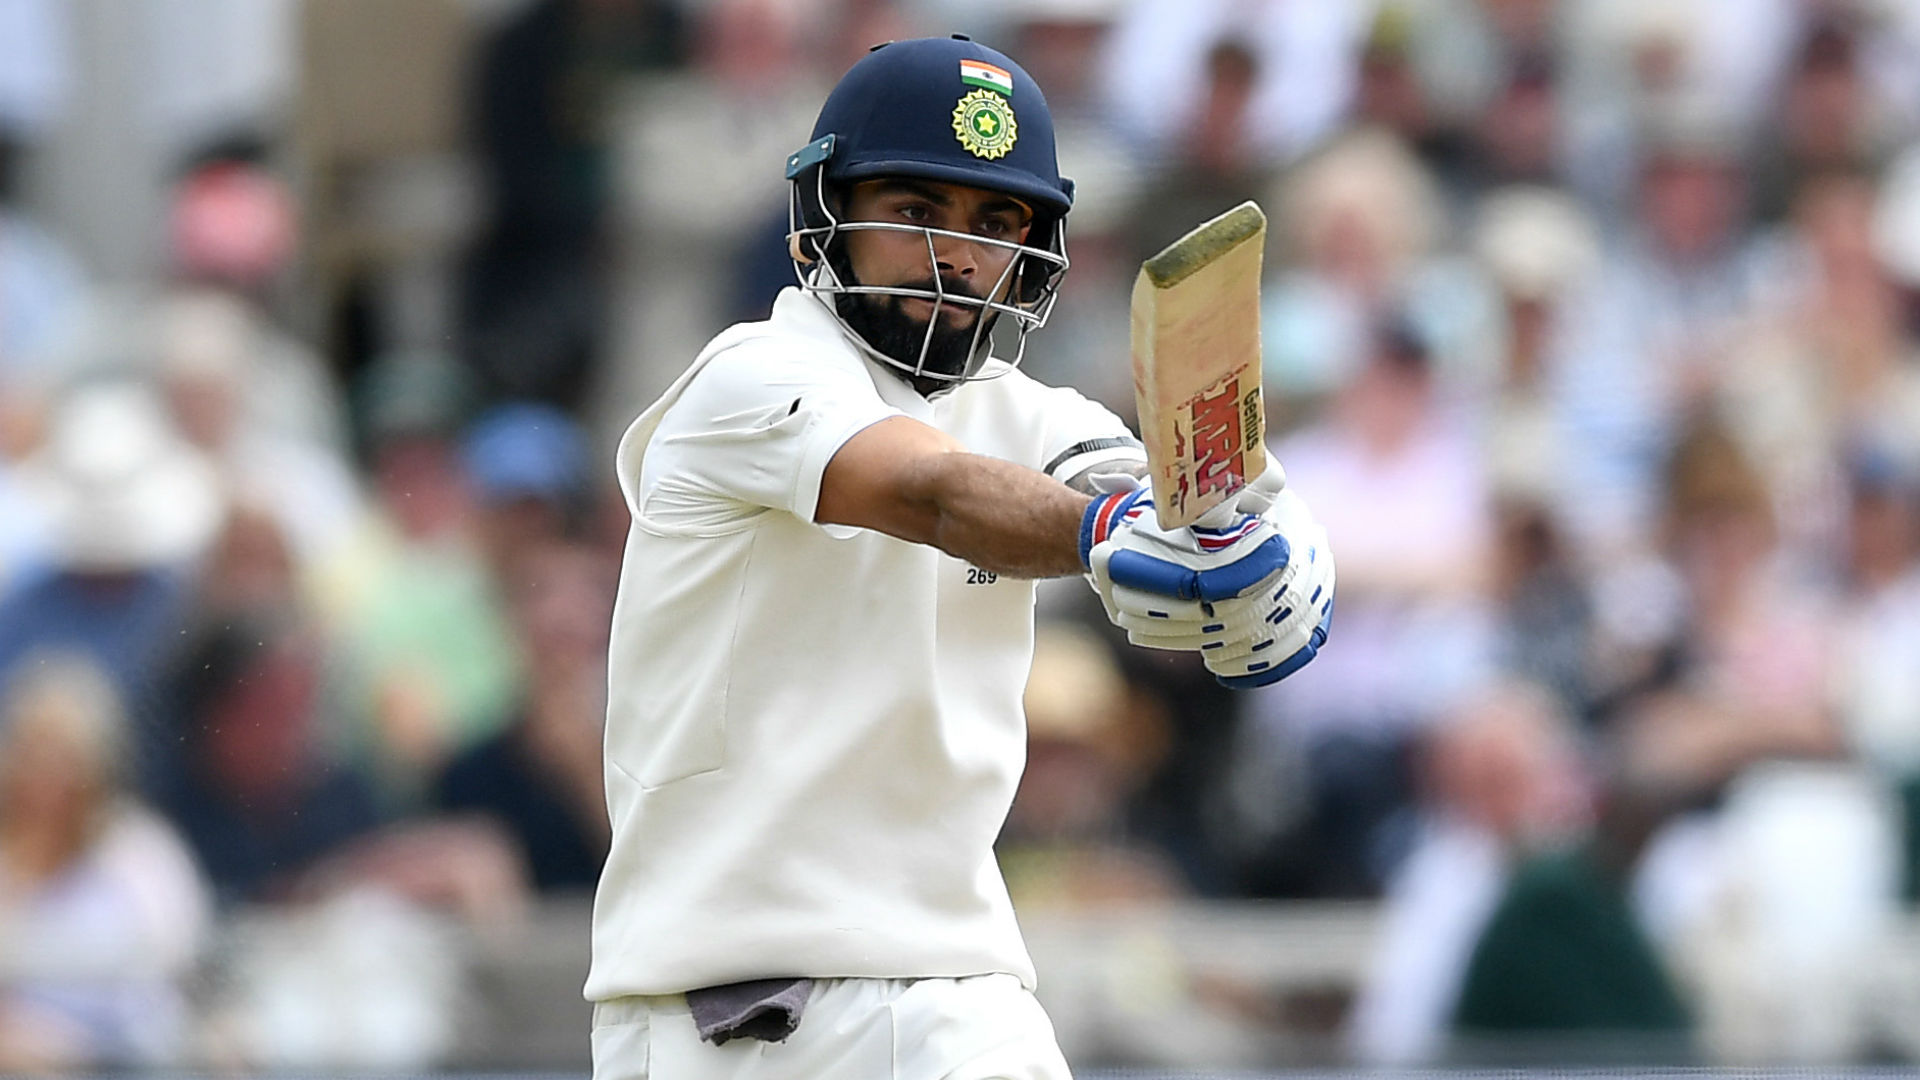 IND vs ENG, 3rd Test Day 2